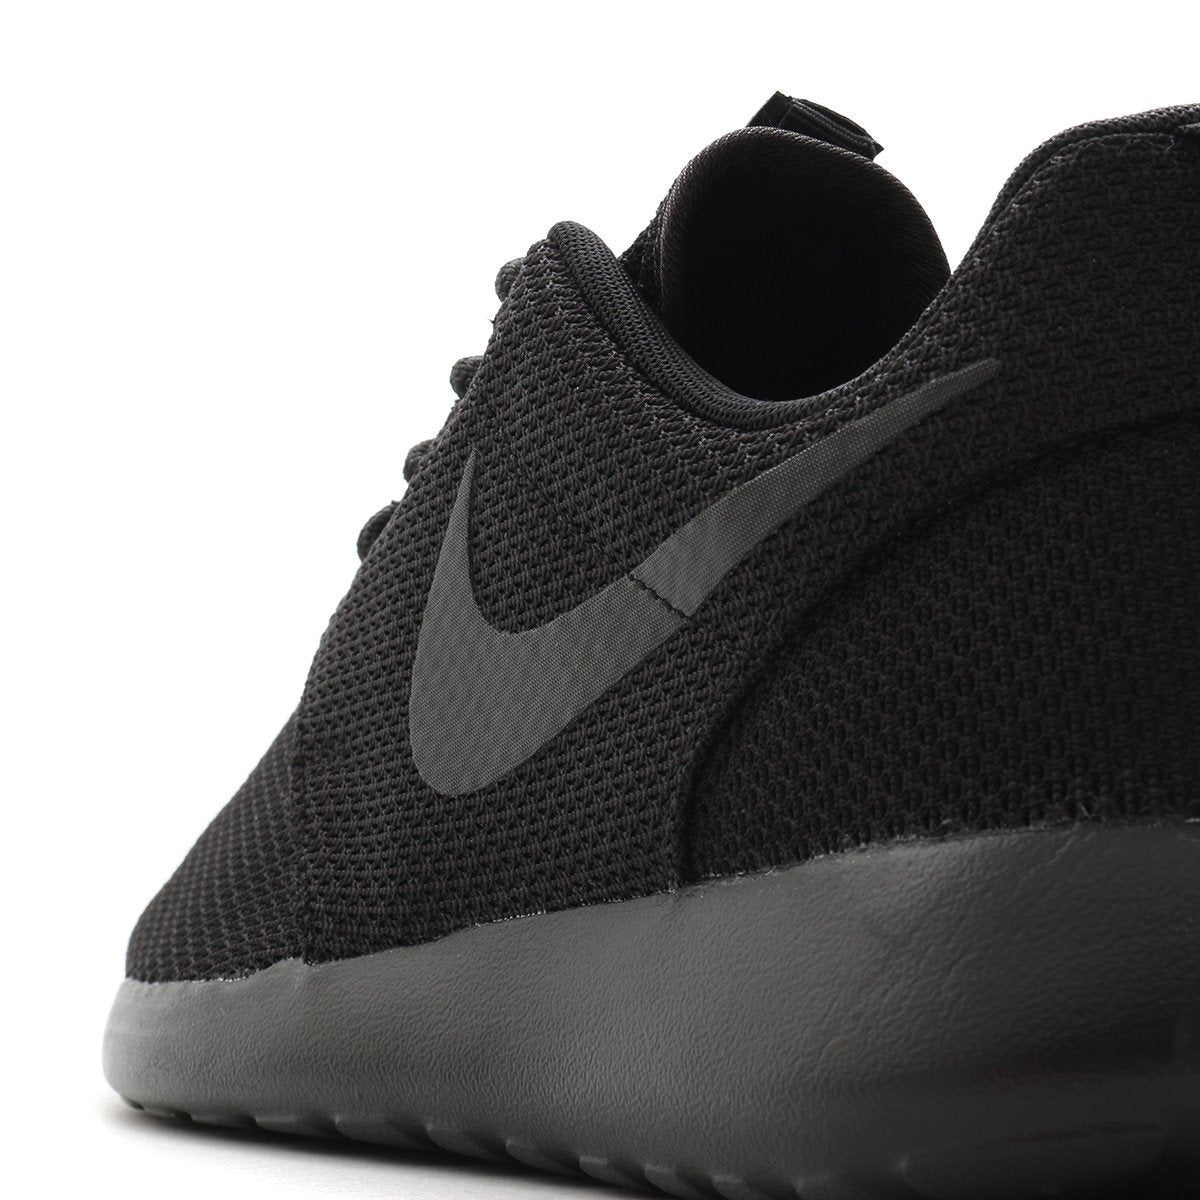 NIKE ROSHE ONE TRIPLE BLACK / BLACK